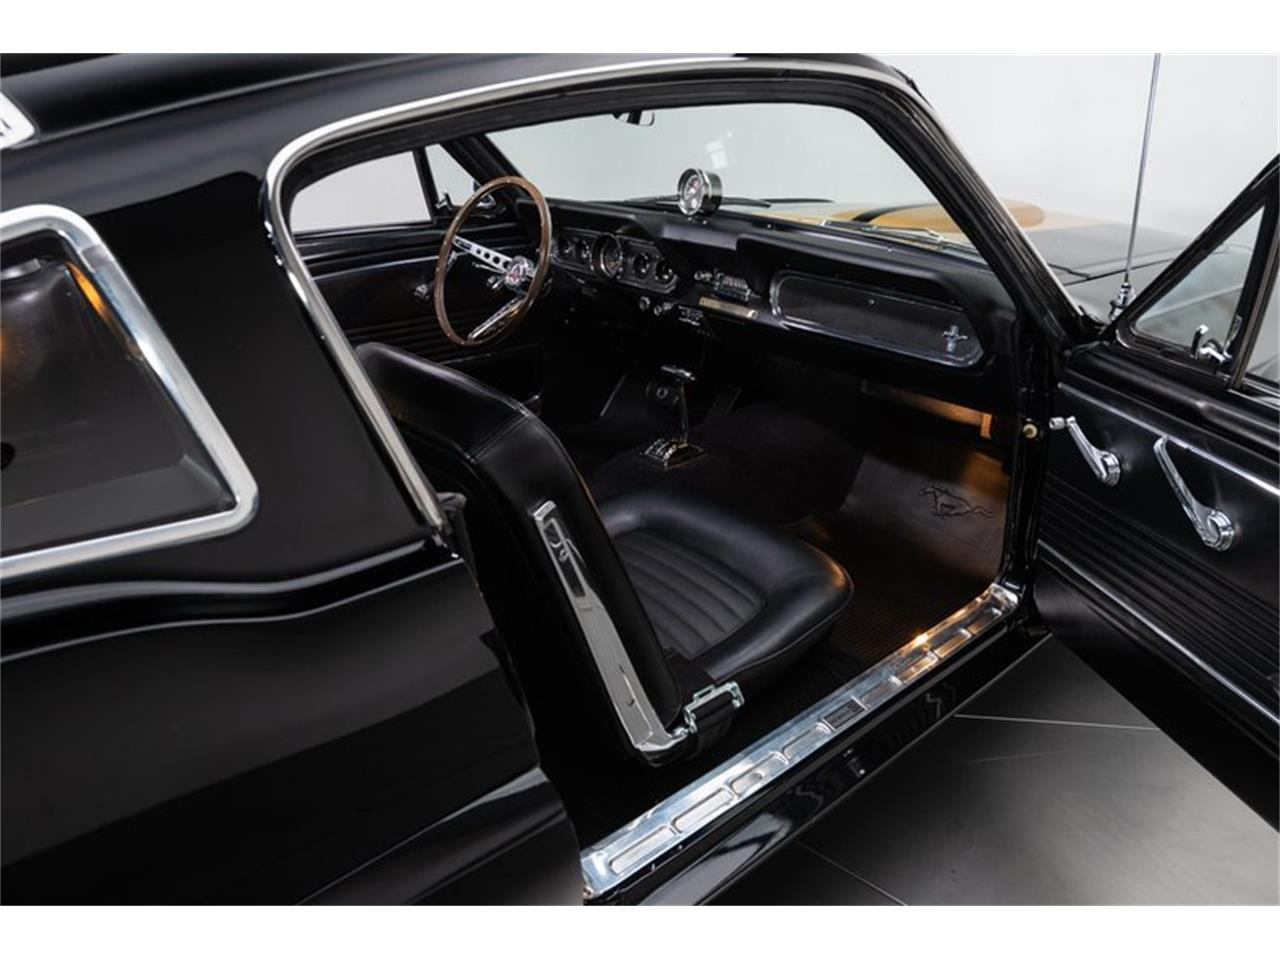 Large Picture of 1966 Mustang - $189,900.00 - Q2WU